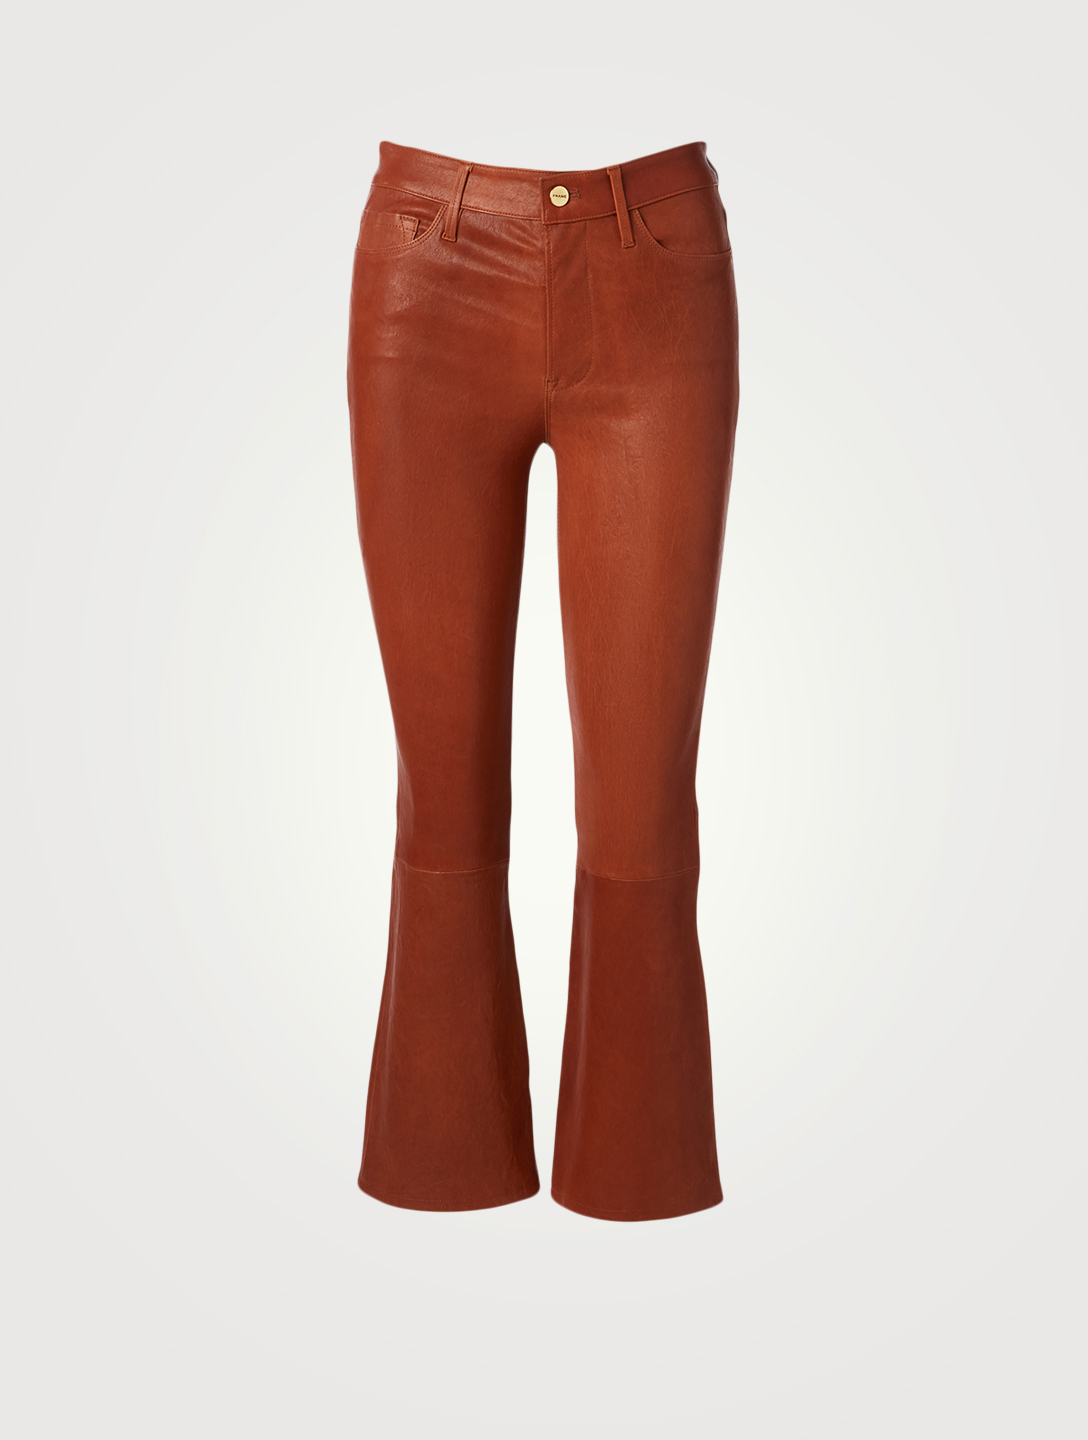 FRAME Le Crop Mini Bootcut Leather Pants Women's Brown